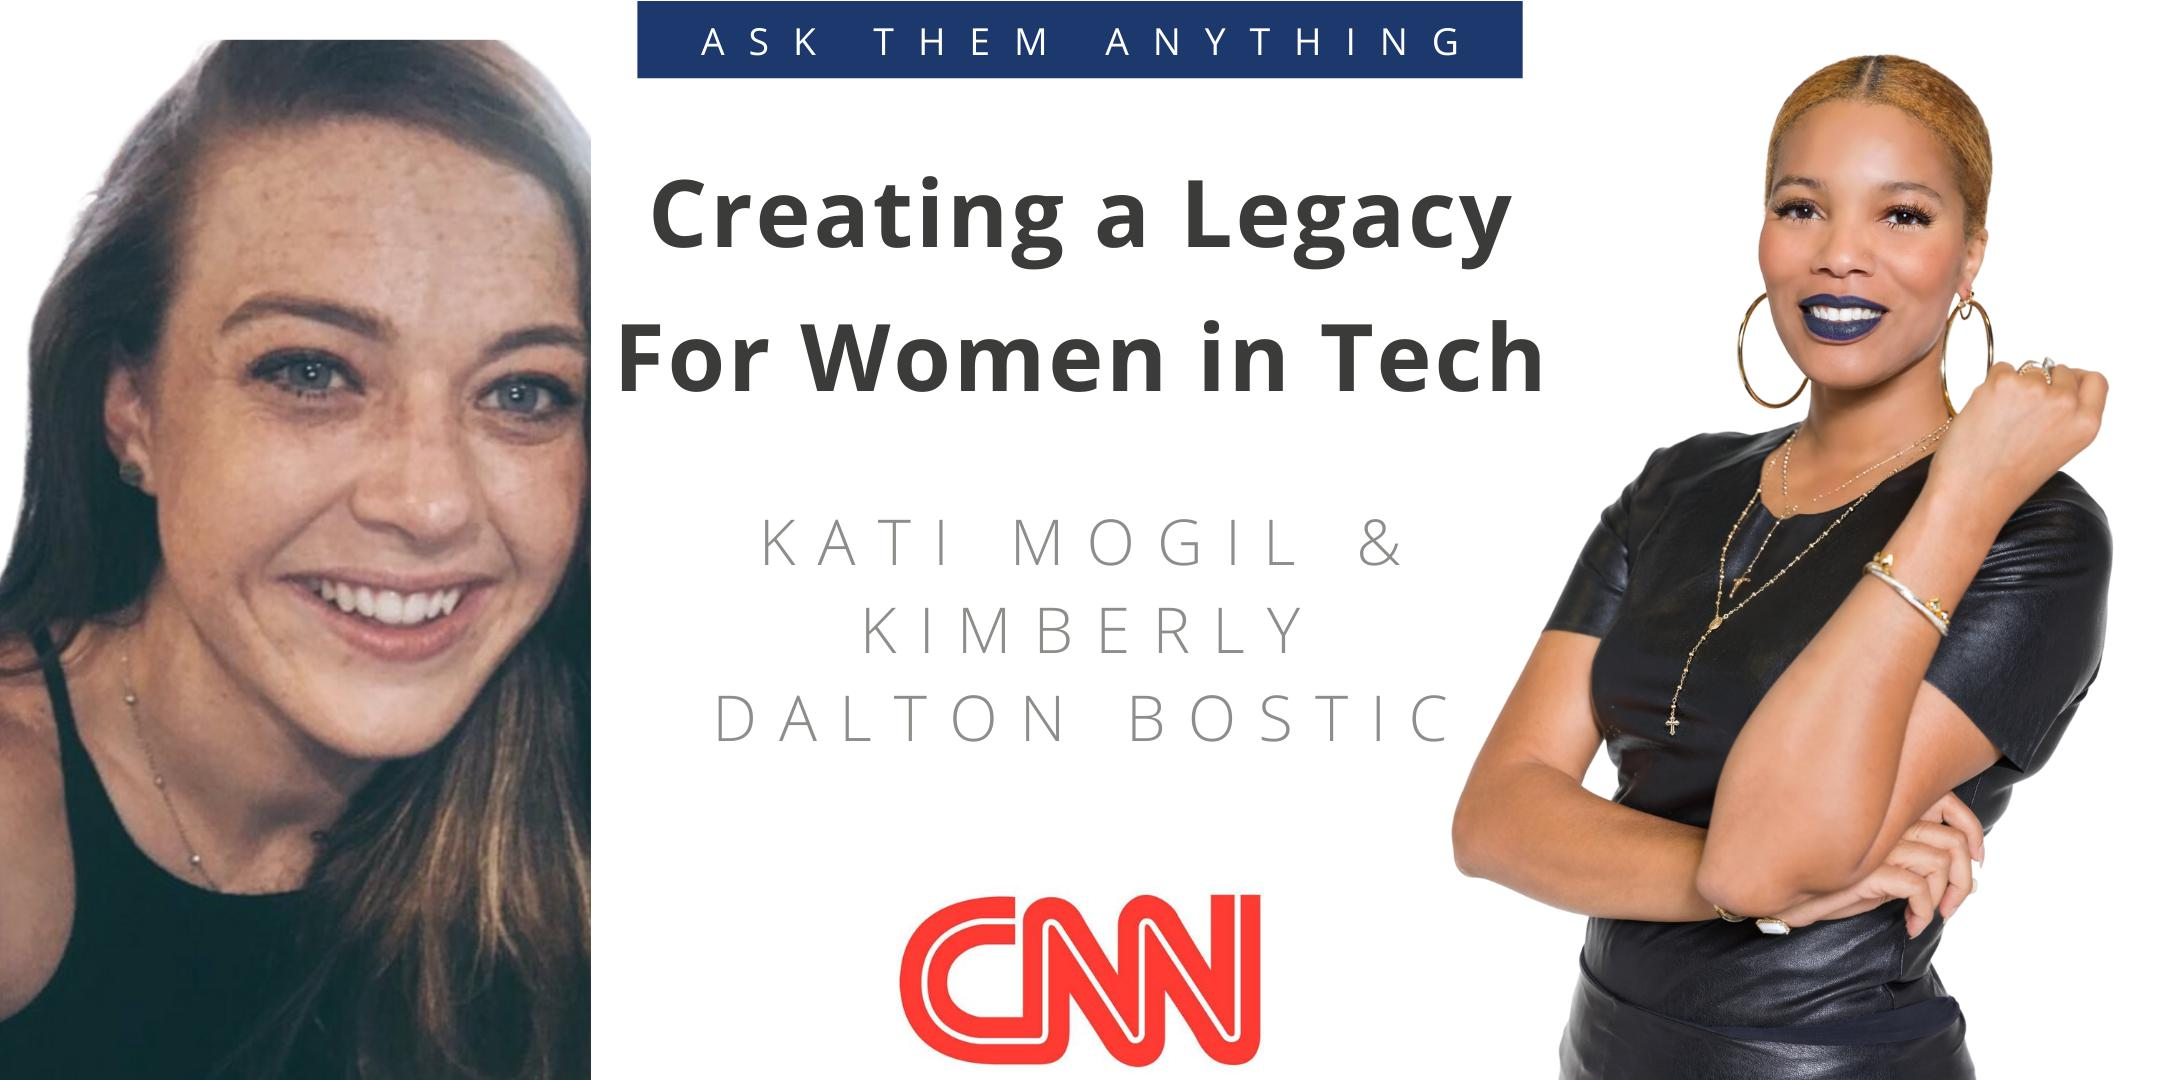 Creating a Legacy For Women in Tech